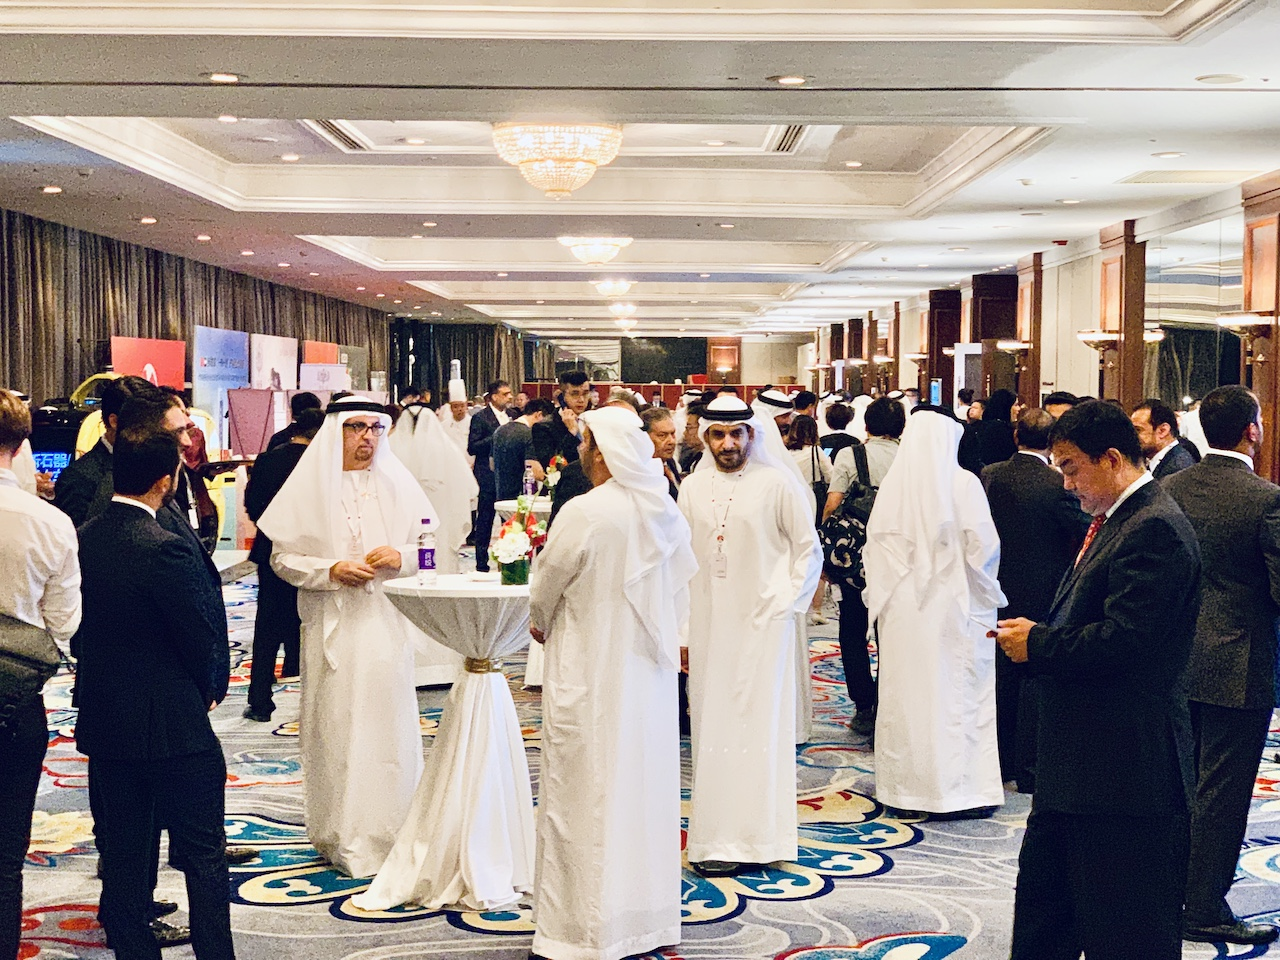 Further Cooperation Starts at UAE-China Economic Forum 2019 in Beijing